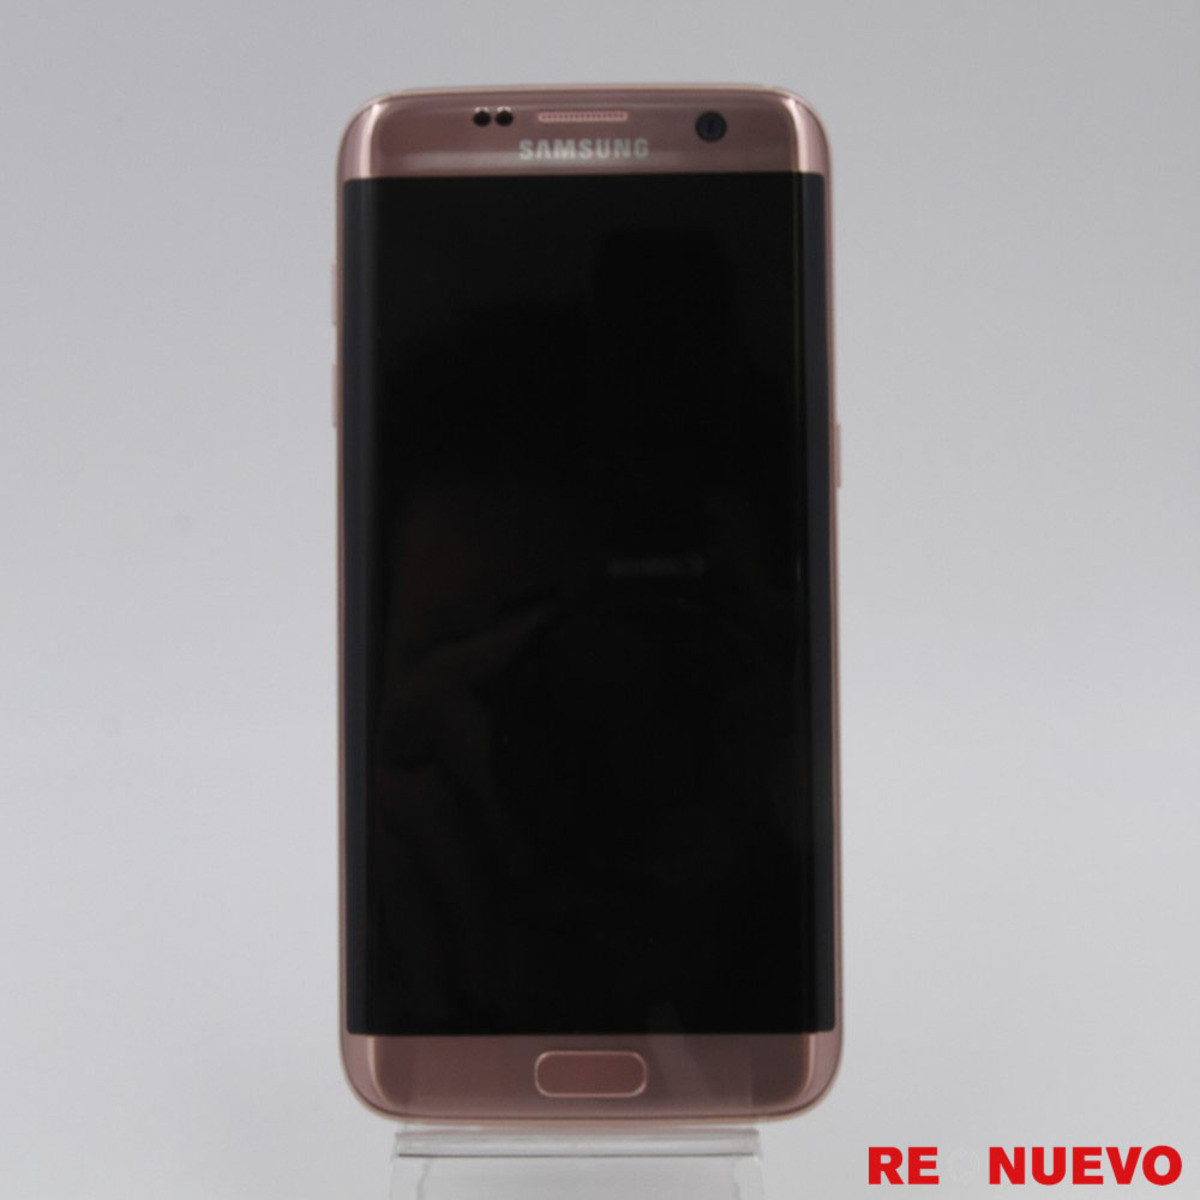 Comprar Galaxy S7 Edge Nuevo Prar Samsung Galaxy S7 Edge De 32gb Pink Gold De Of Comprar Galaxy S7 Edge Perfecto Samsung Galaxy S7 Edge Celulares Costa Rica